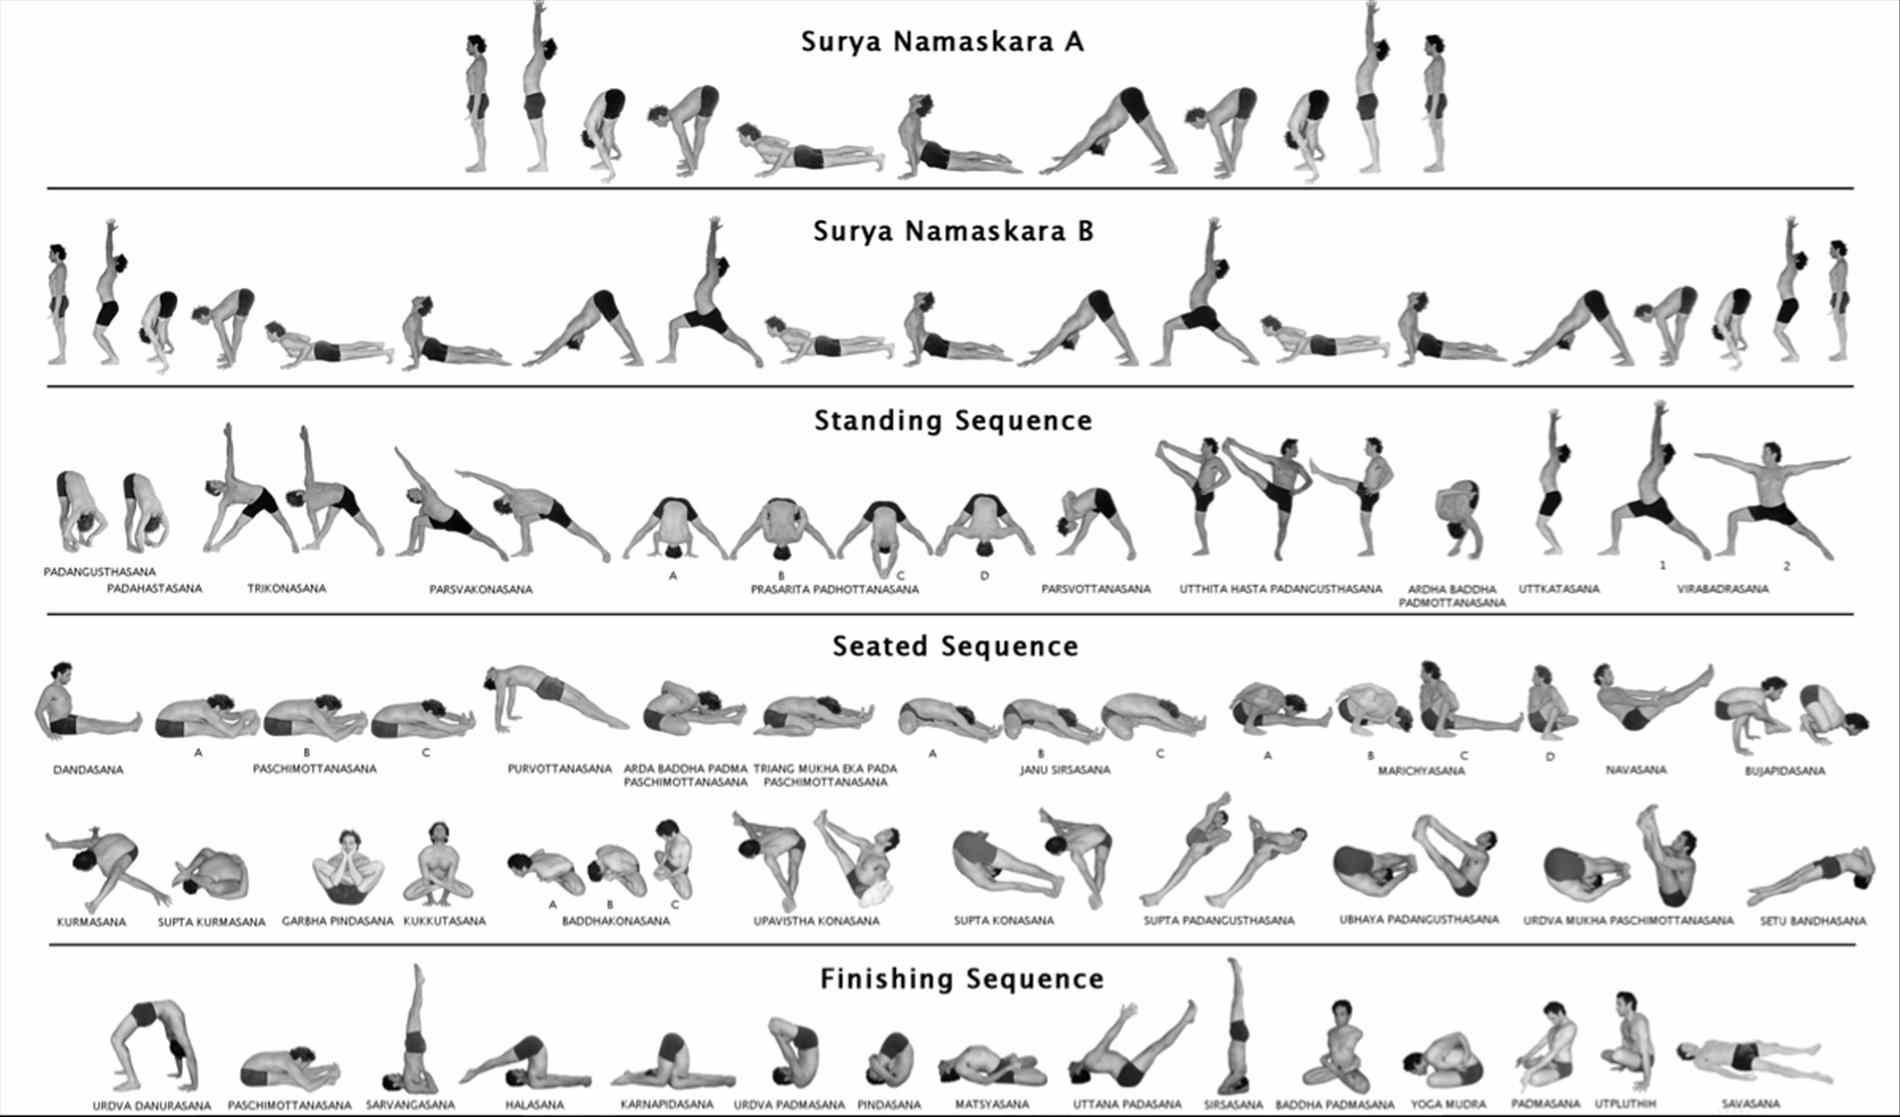 Vinyasa Flow Yoga Sequence Includes A Link To Pdf Called For Digestion Yogi David Kyle What Is Rocket Yogi Vinyasa Flow Yoga Jpg Vinyasa Flow Yoga Ashtanga Vinyasa Yoga Ashtanga Yoga